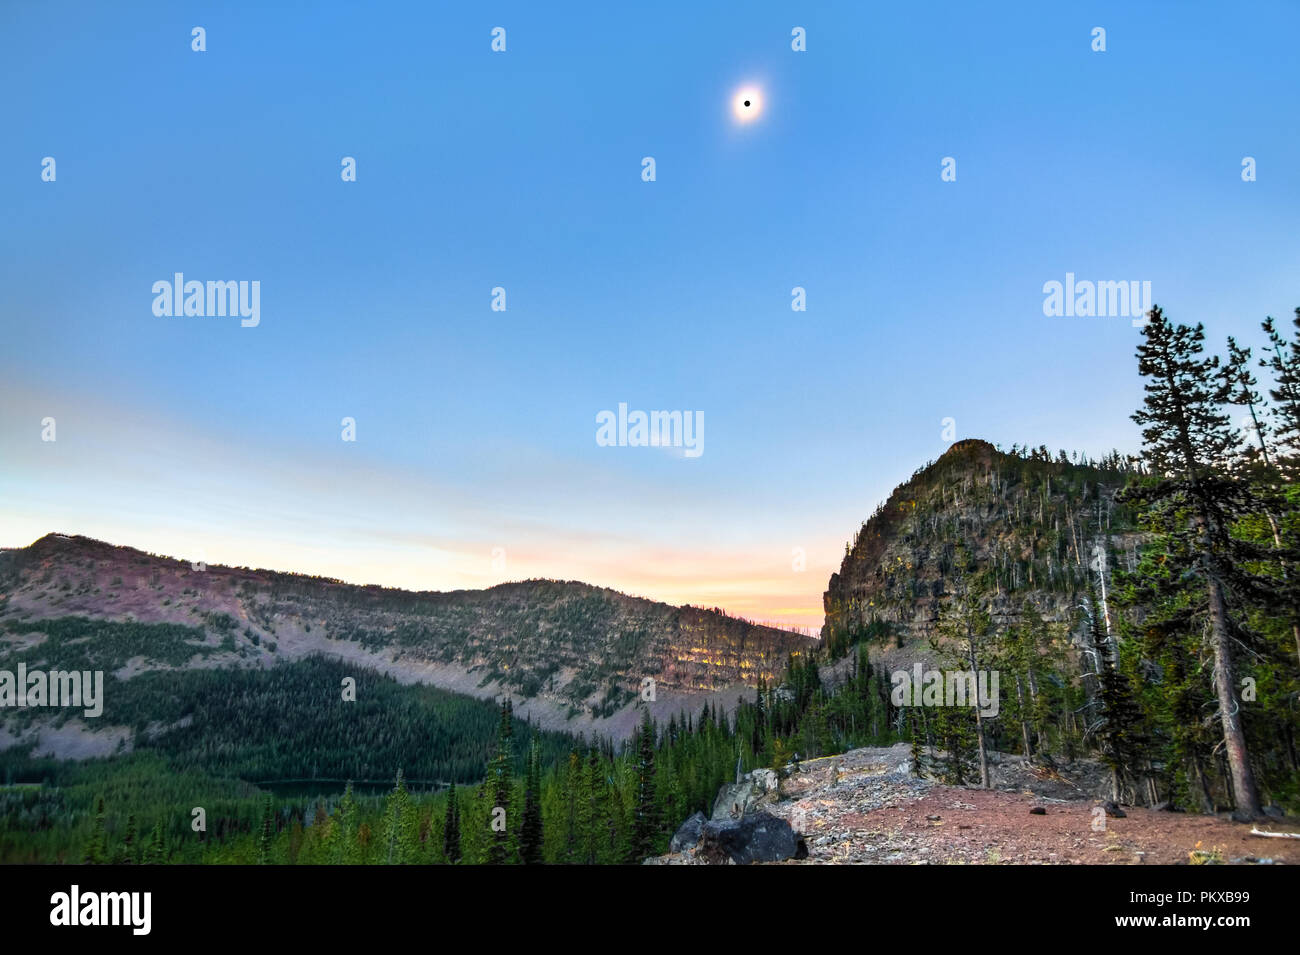 The sun turns into a black dot during a total solar eclipse on 8-21-17 in the Strawberry Mountains Wilderness, Oregon. - Stock Image